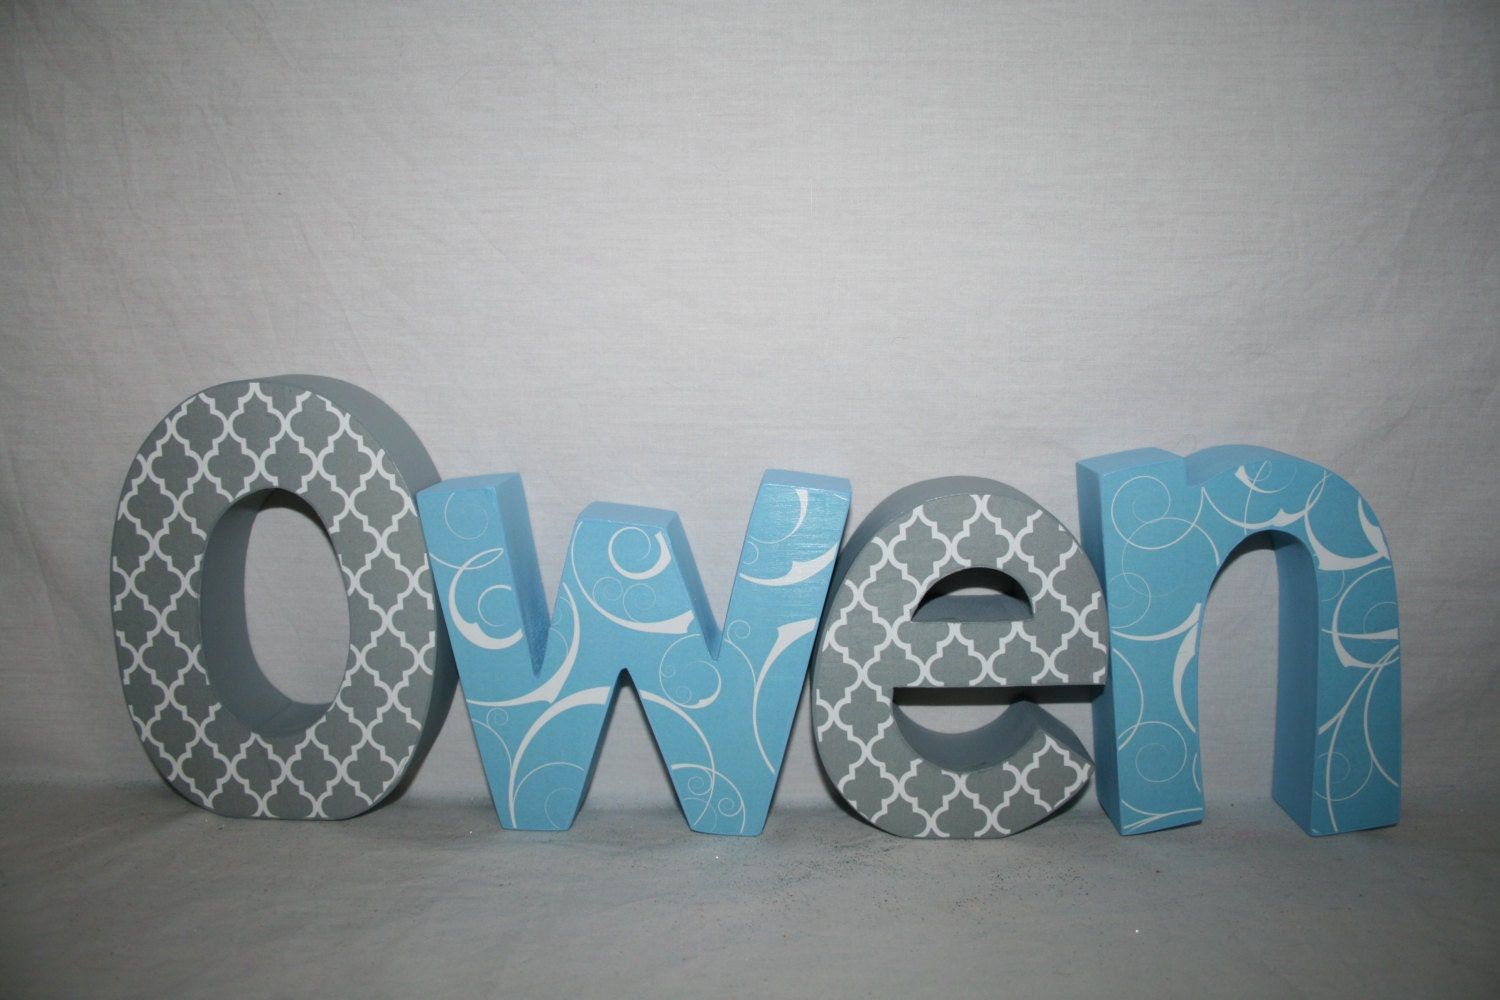 wooden letters for nursery nursery letters 4 letter set wood letters name sign name letters blue nursery decor baby shower decor